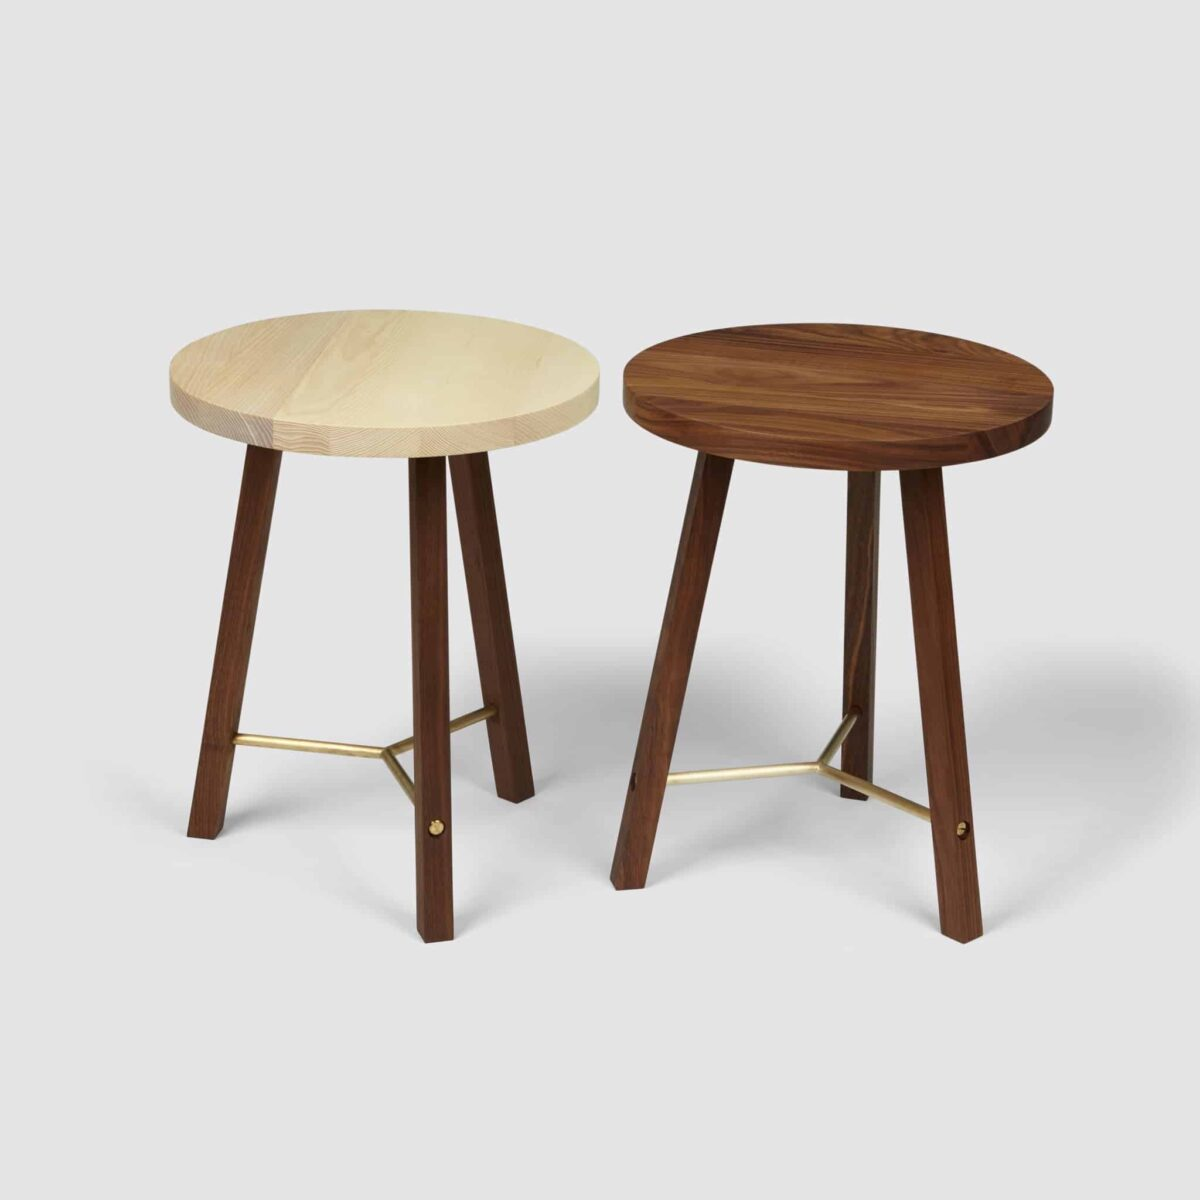 series-two-side-table-round-another-country-002